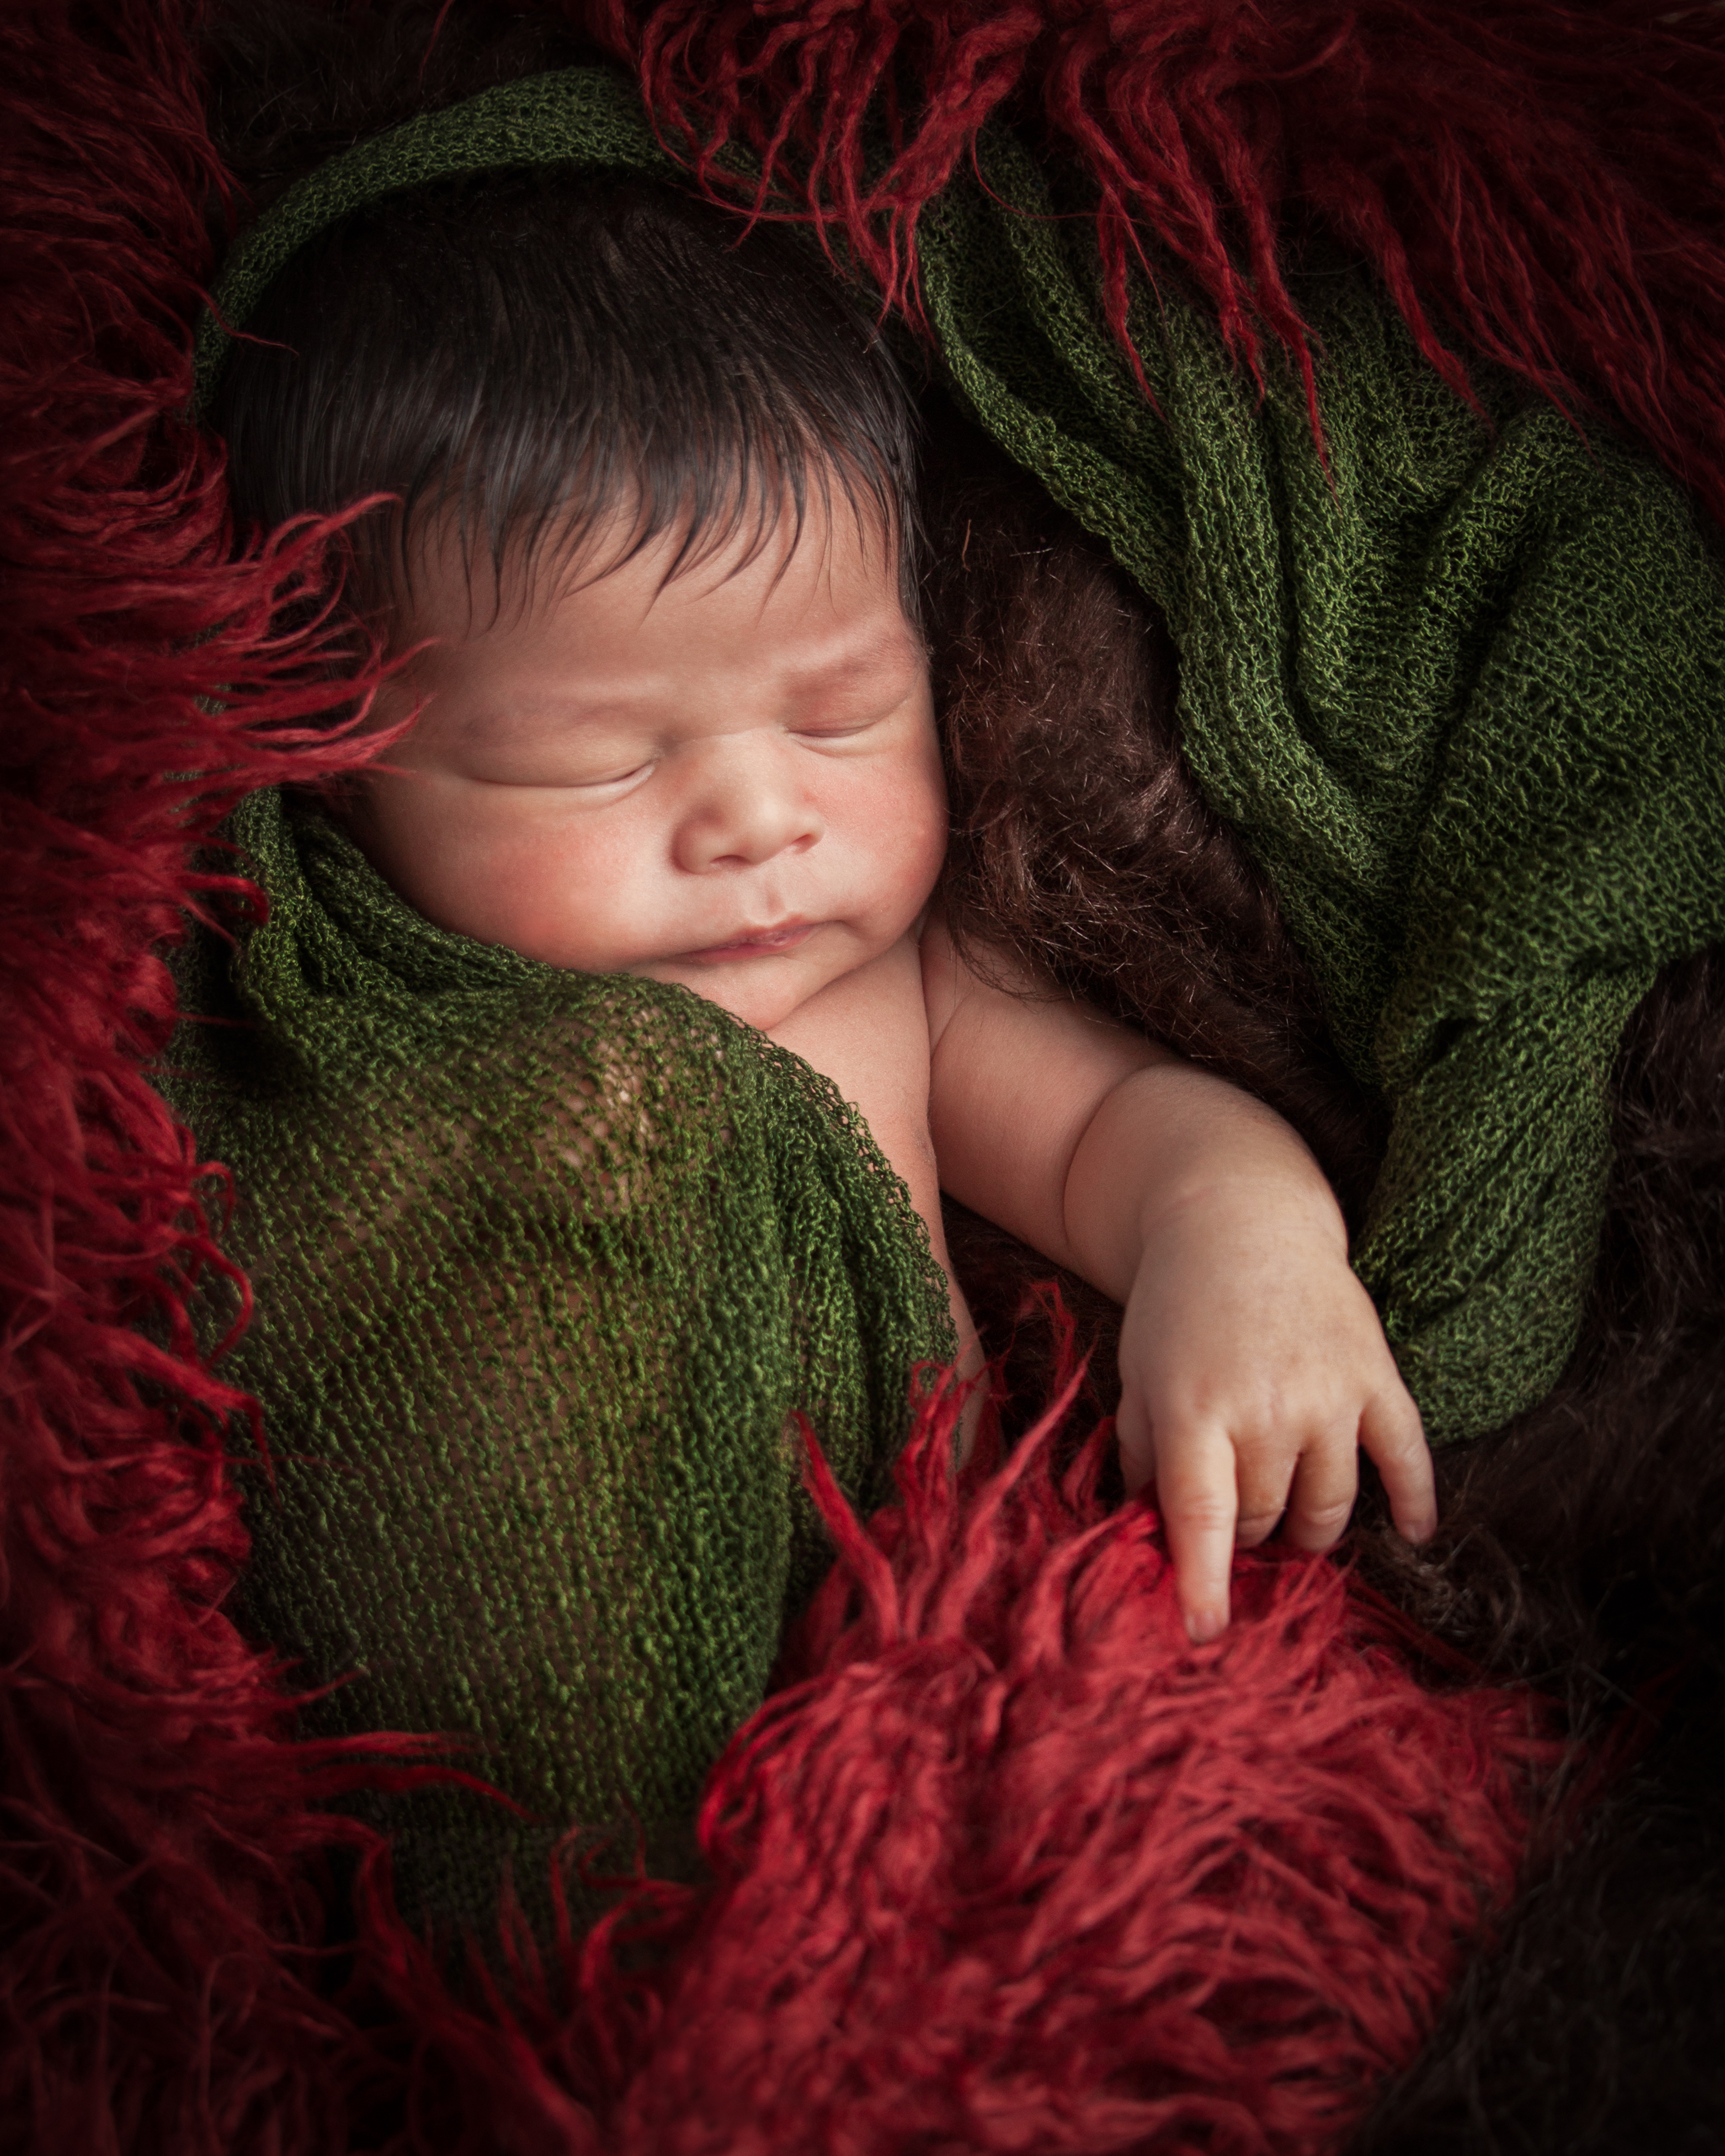 Baby asleep with neutral earth tone colors